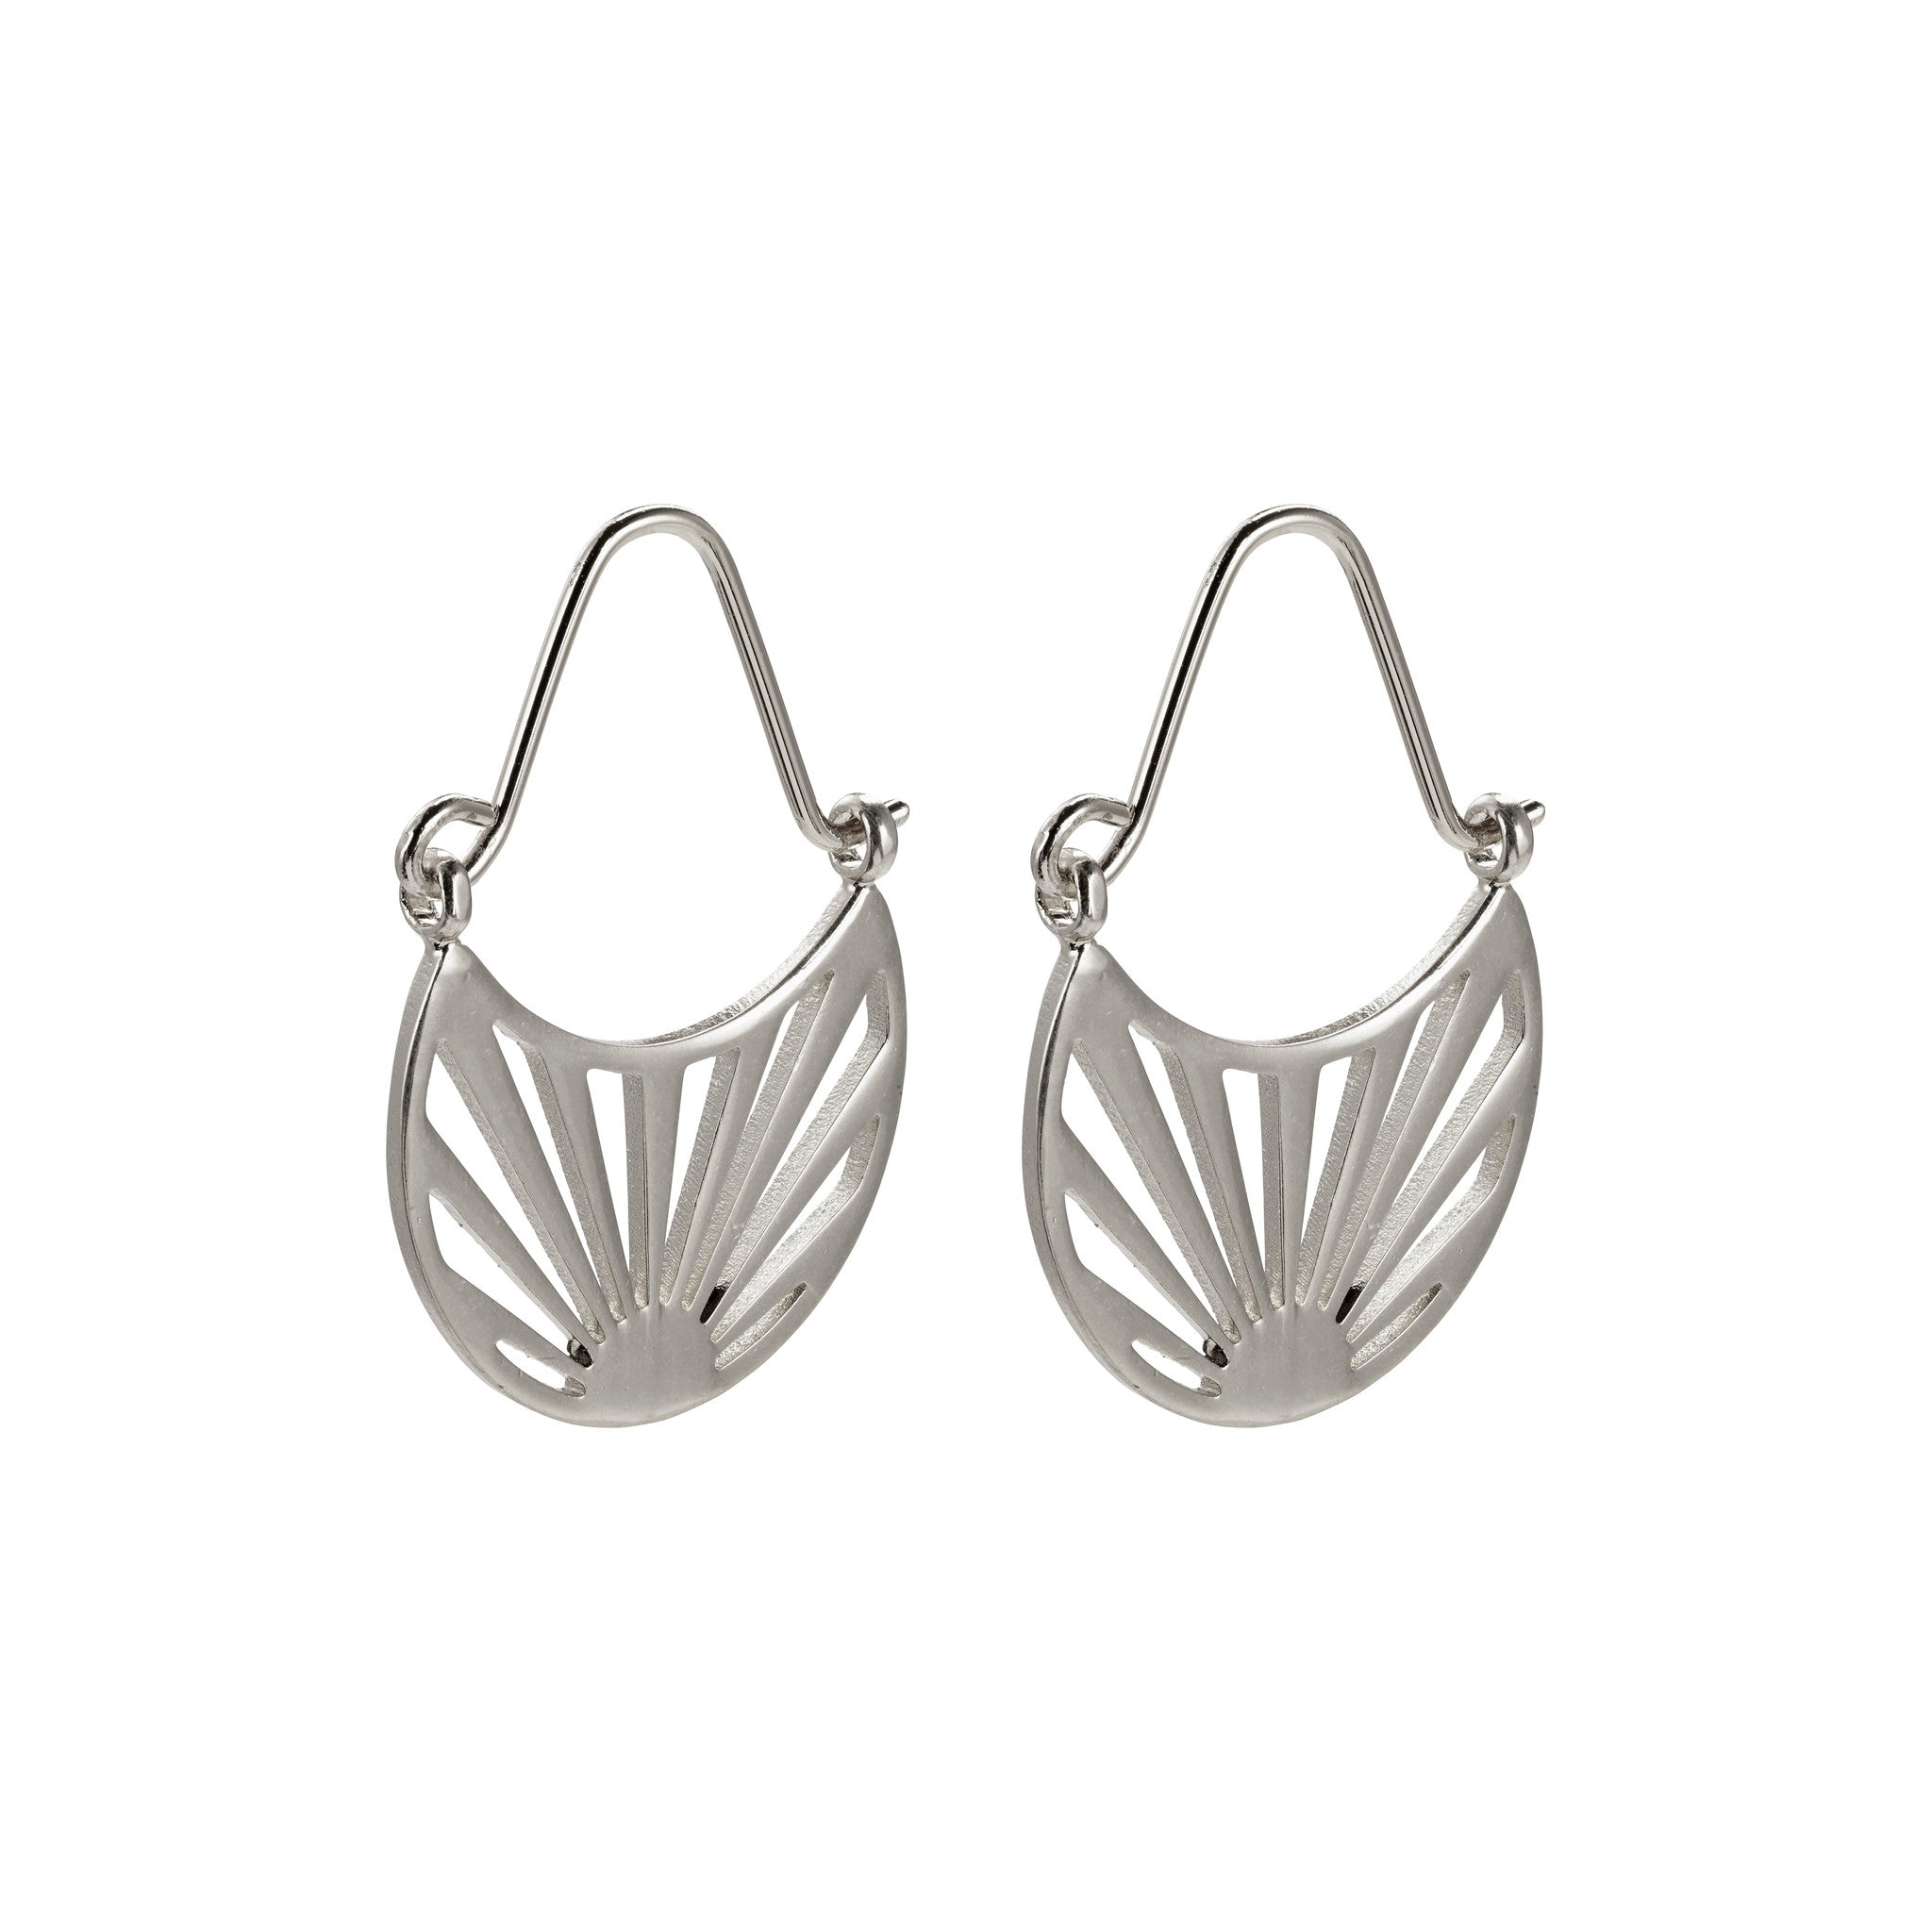 Pilgrim Fire Earrings, Silver